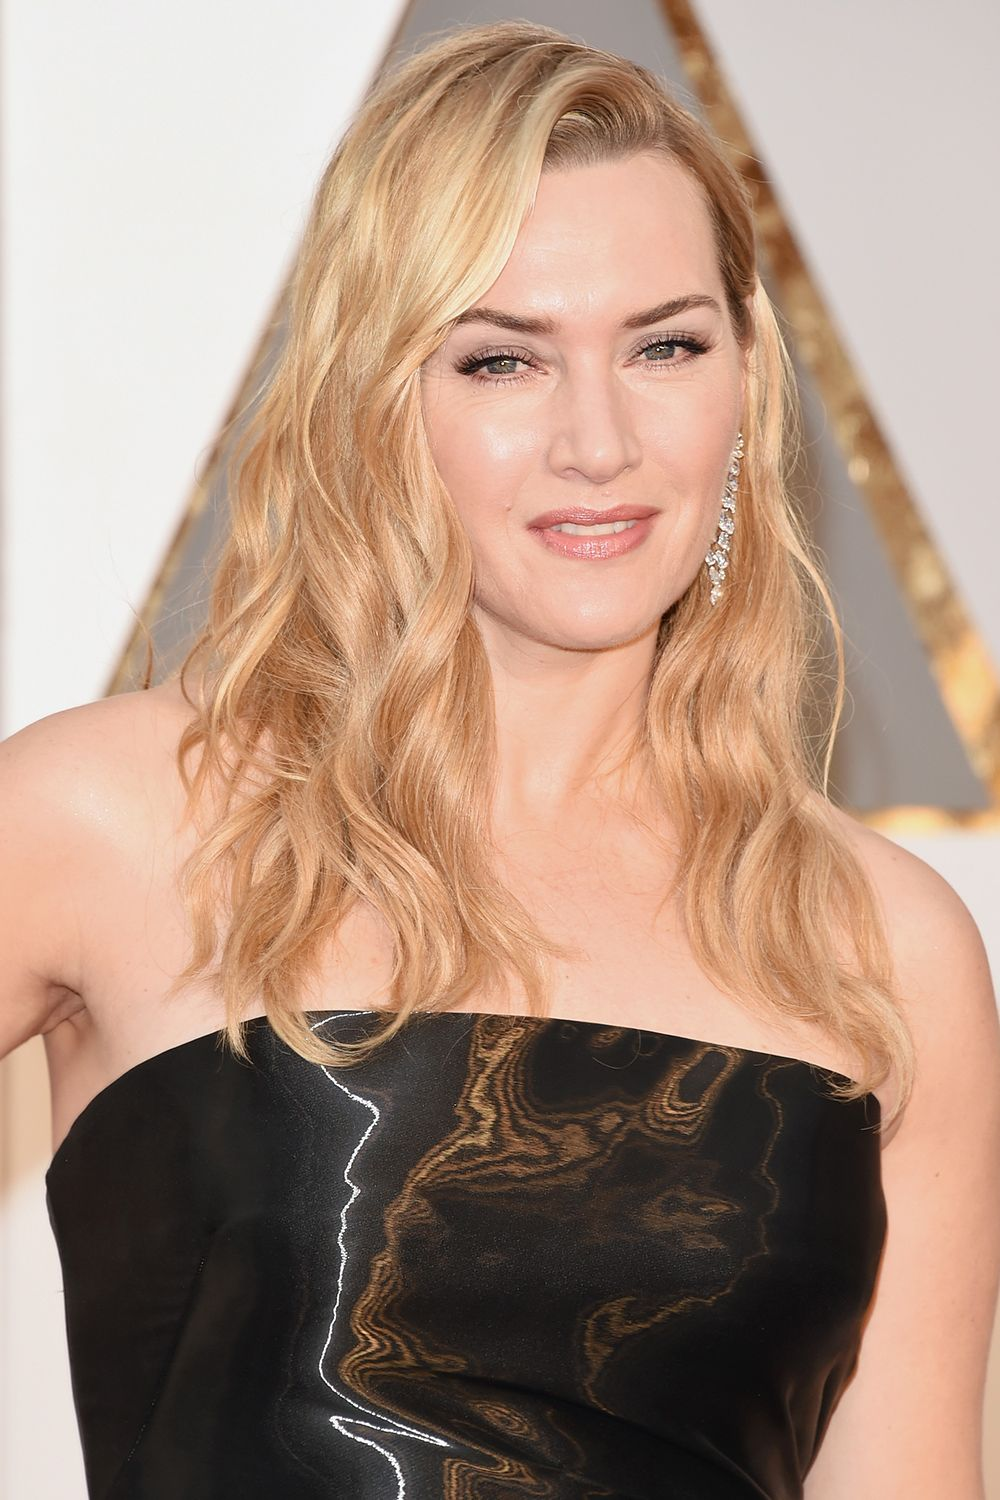 """Kate Winslet This is how Kate Winslet reacted when asked by Harpers Bazaar if she's tried Botox: """"Oh f*ck no!"""""""